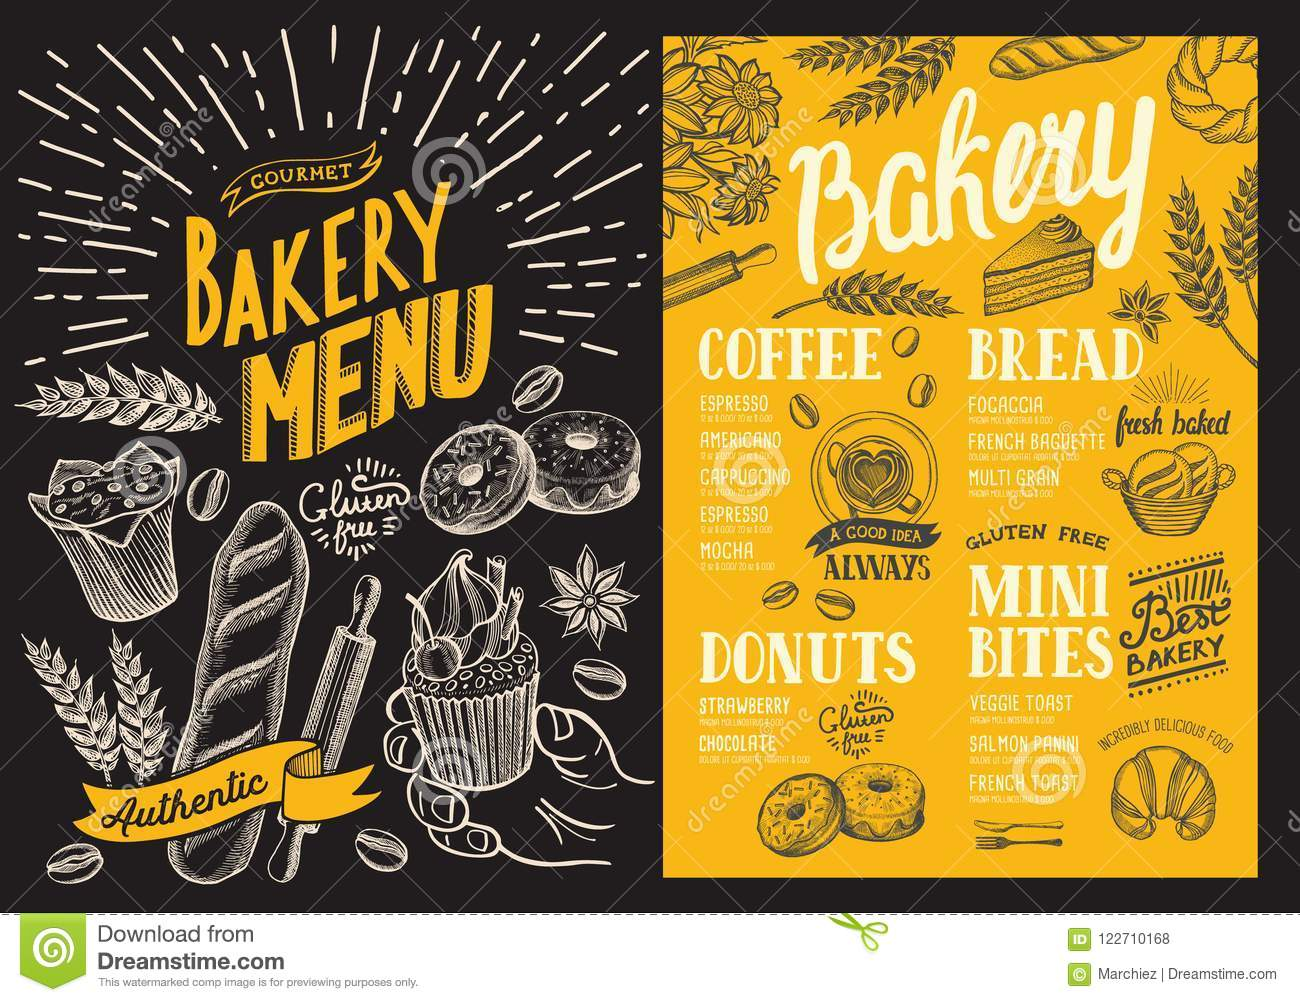 Bakery Menu For Restaurant Design Template With Food Hand Drawn Graphic Illustrations Vector Food Flyer For Bar And Cafe On Stock Vector Illustration Of Menu Hipster 122710168